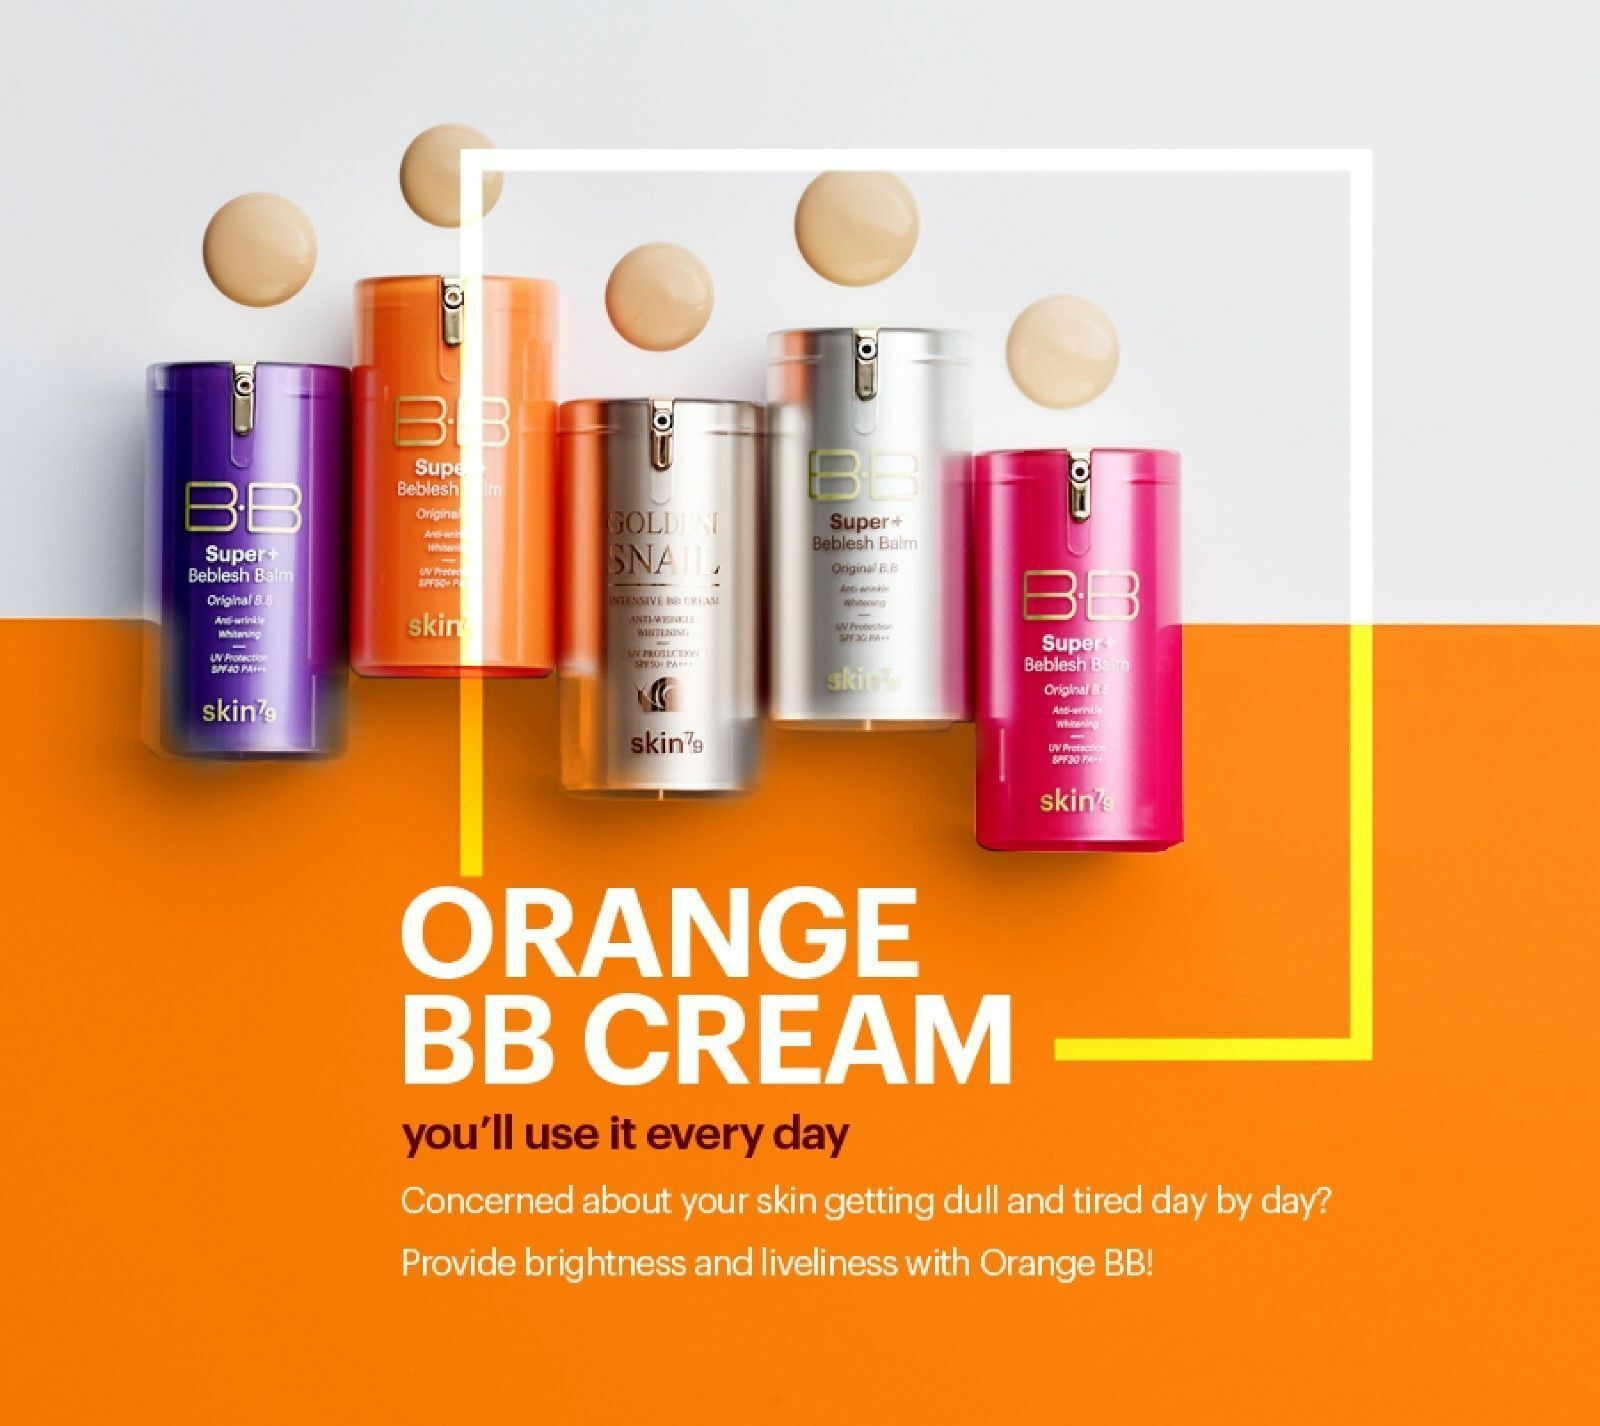 SKIN79 ORANGE BB CREAM SUPER+ BEBLESH BALM 40g Yellow Beige 23 /Mini BB Cream 7g